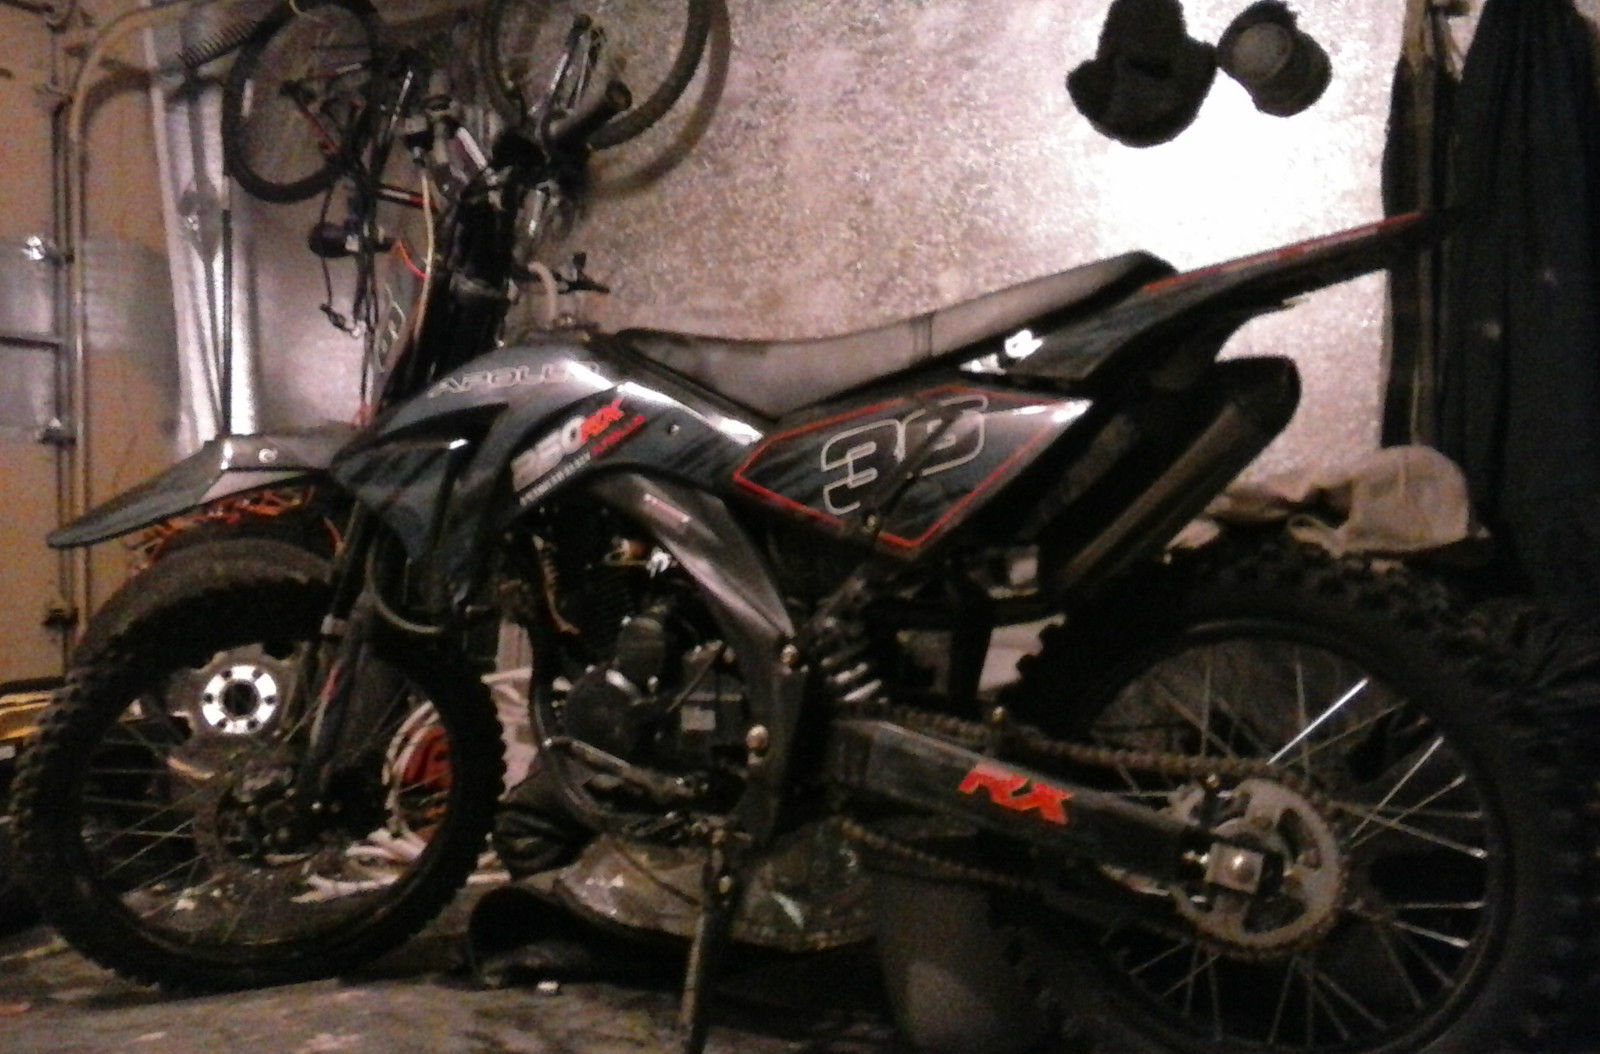 2014 Apollo 250cc Dirt Bike Motorcycle Off Road Clear Nevada Title Honda Other Makes